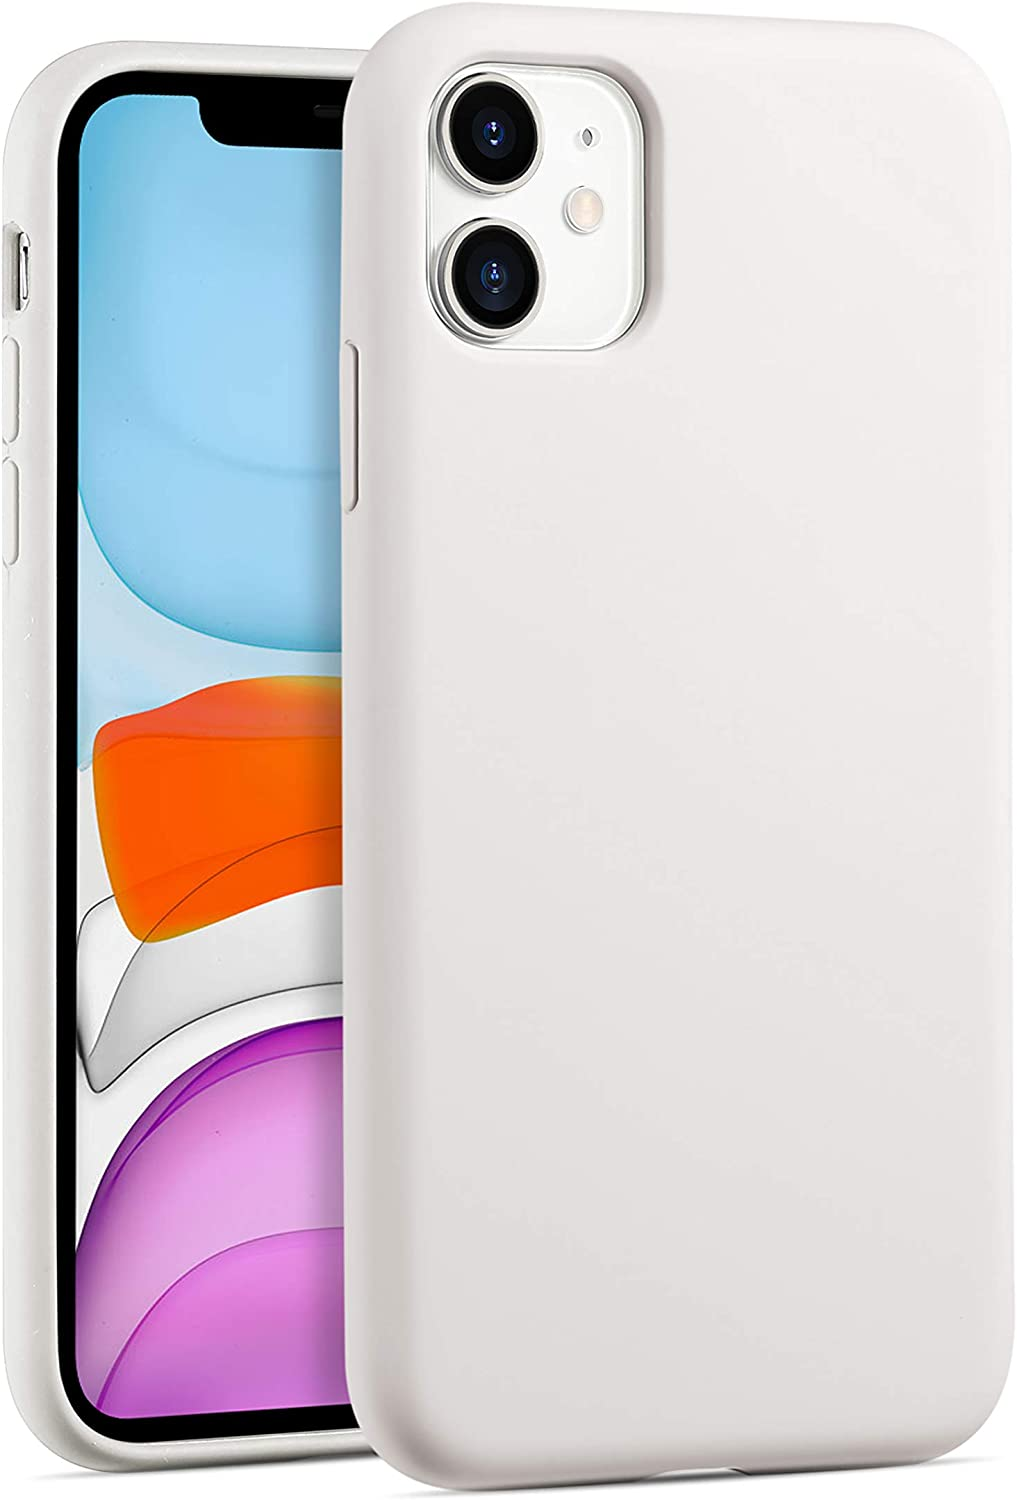 Nobranded Liquid Silicone Cell Phone Case for iPhone 11 with Full Body Shockproof Cover Drop Protection (Antique White)